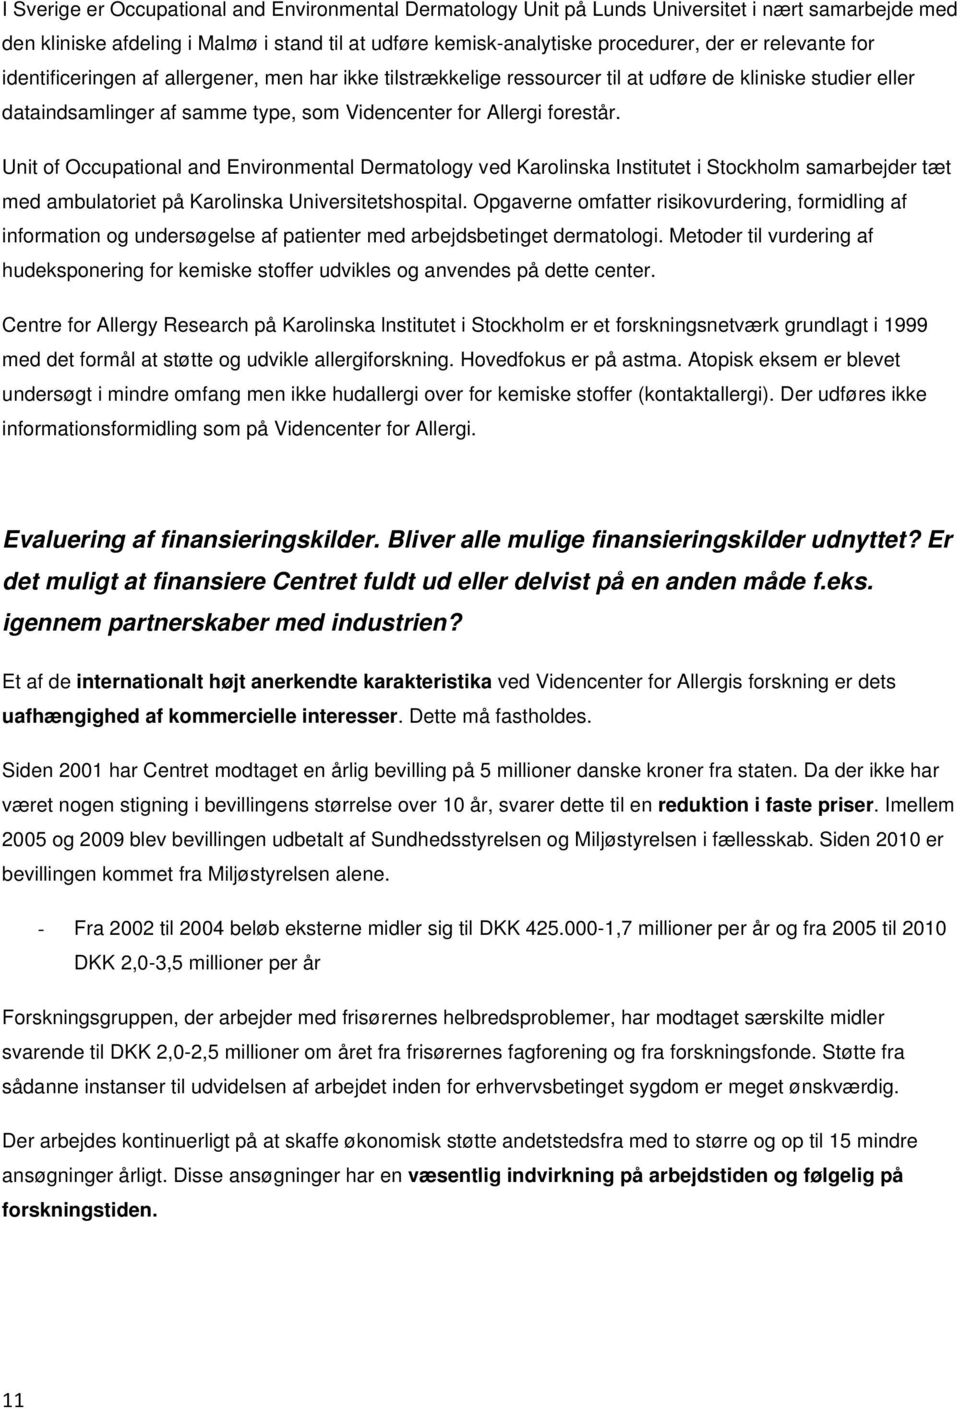 Unit of Occupational and Environmental Dermatology ved Karolinska Institutet i Stockholm samarbejder tæt med ambulatoriet på Karolinska Universitetshospital.